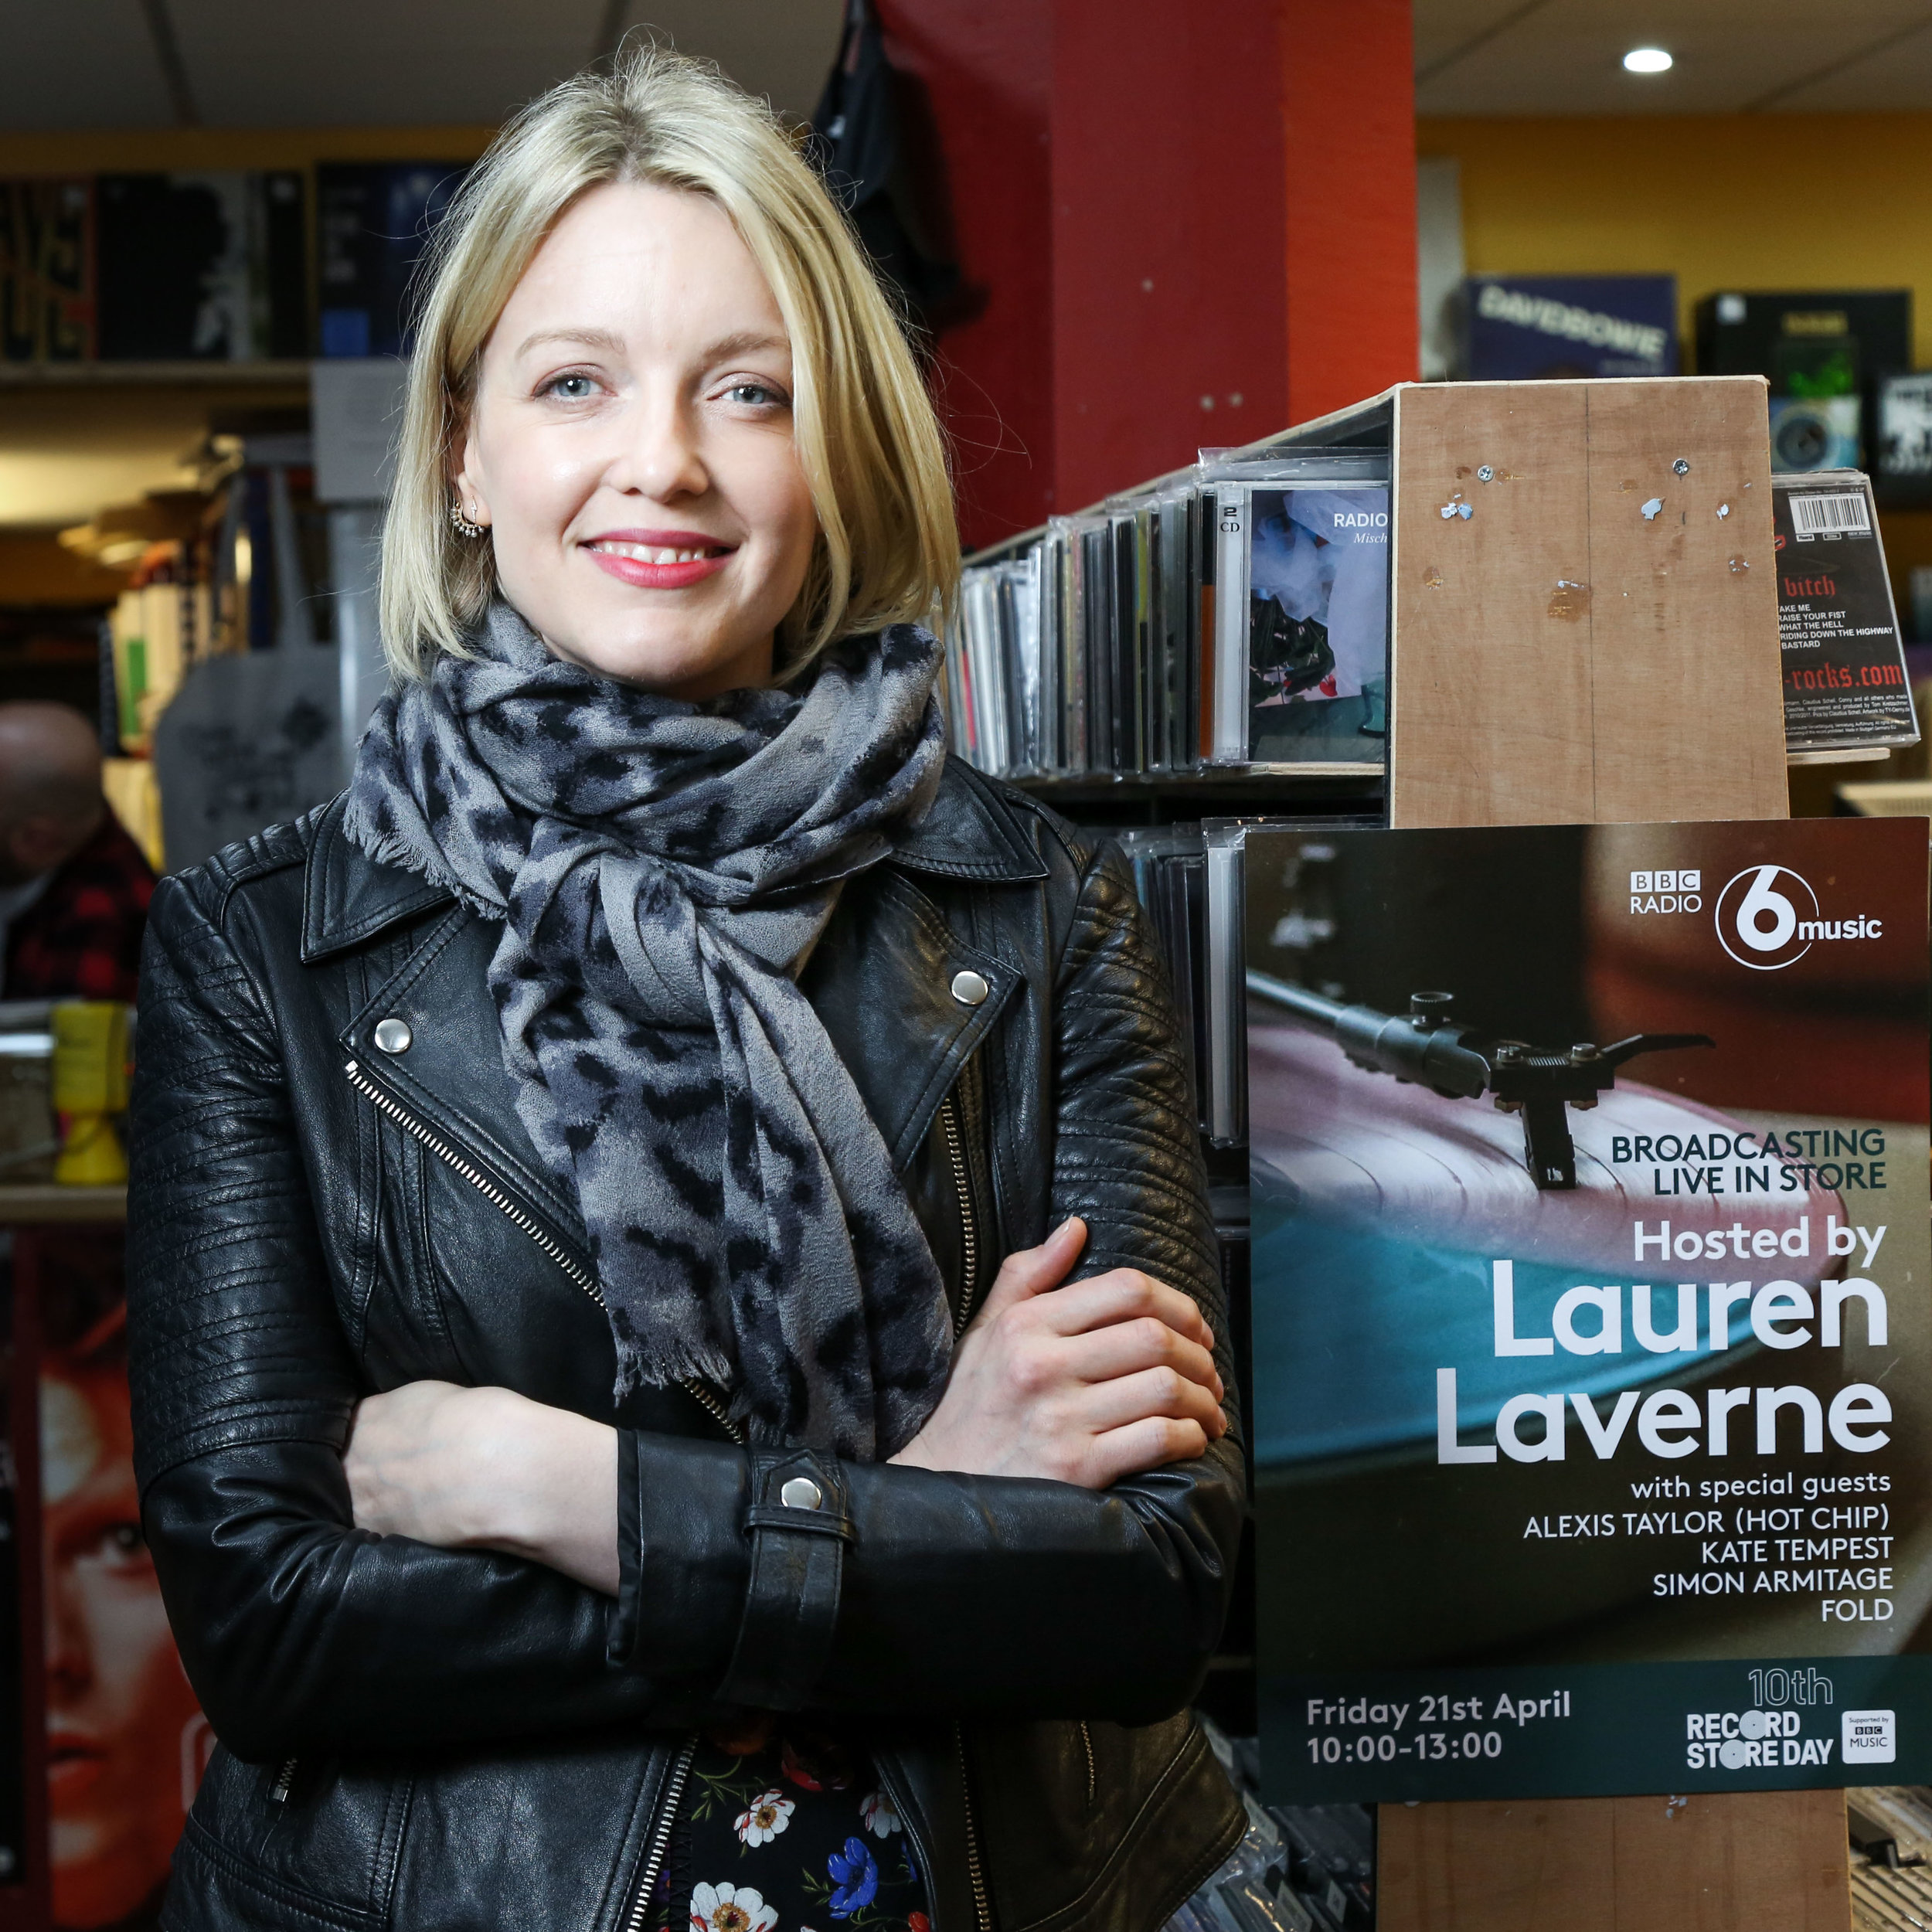 BBC 6 Music presenter, Lauren Laverne